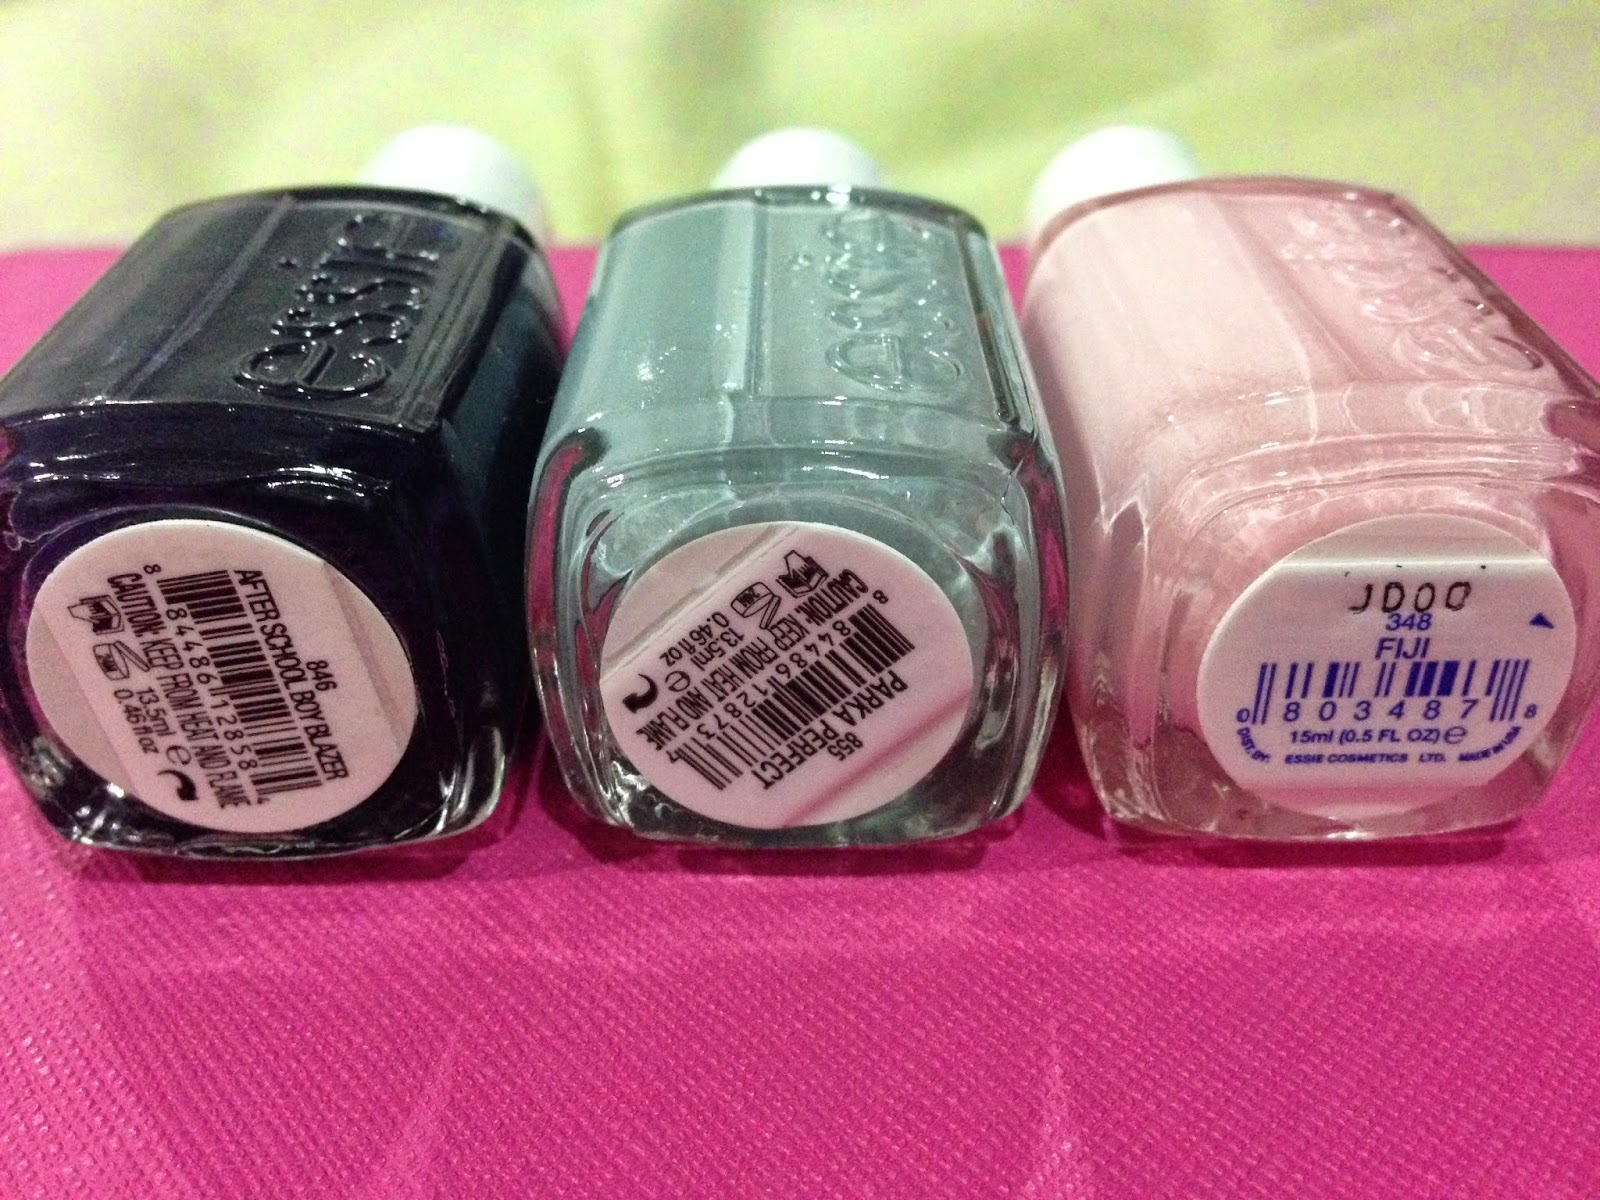 Essie Polish Haul: Part 1 (Parka Perfect, After School Boy Blazer & Fiji)